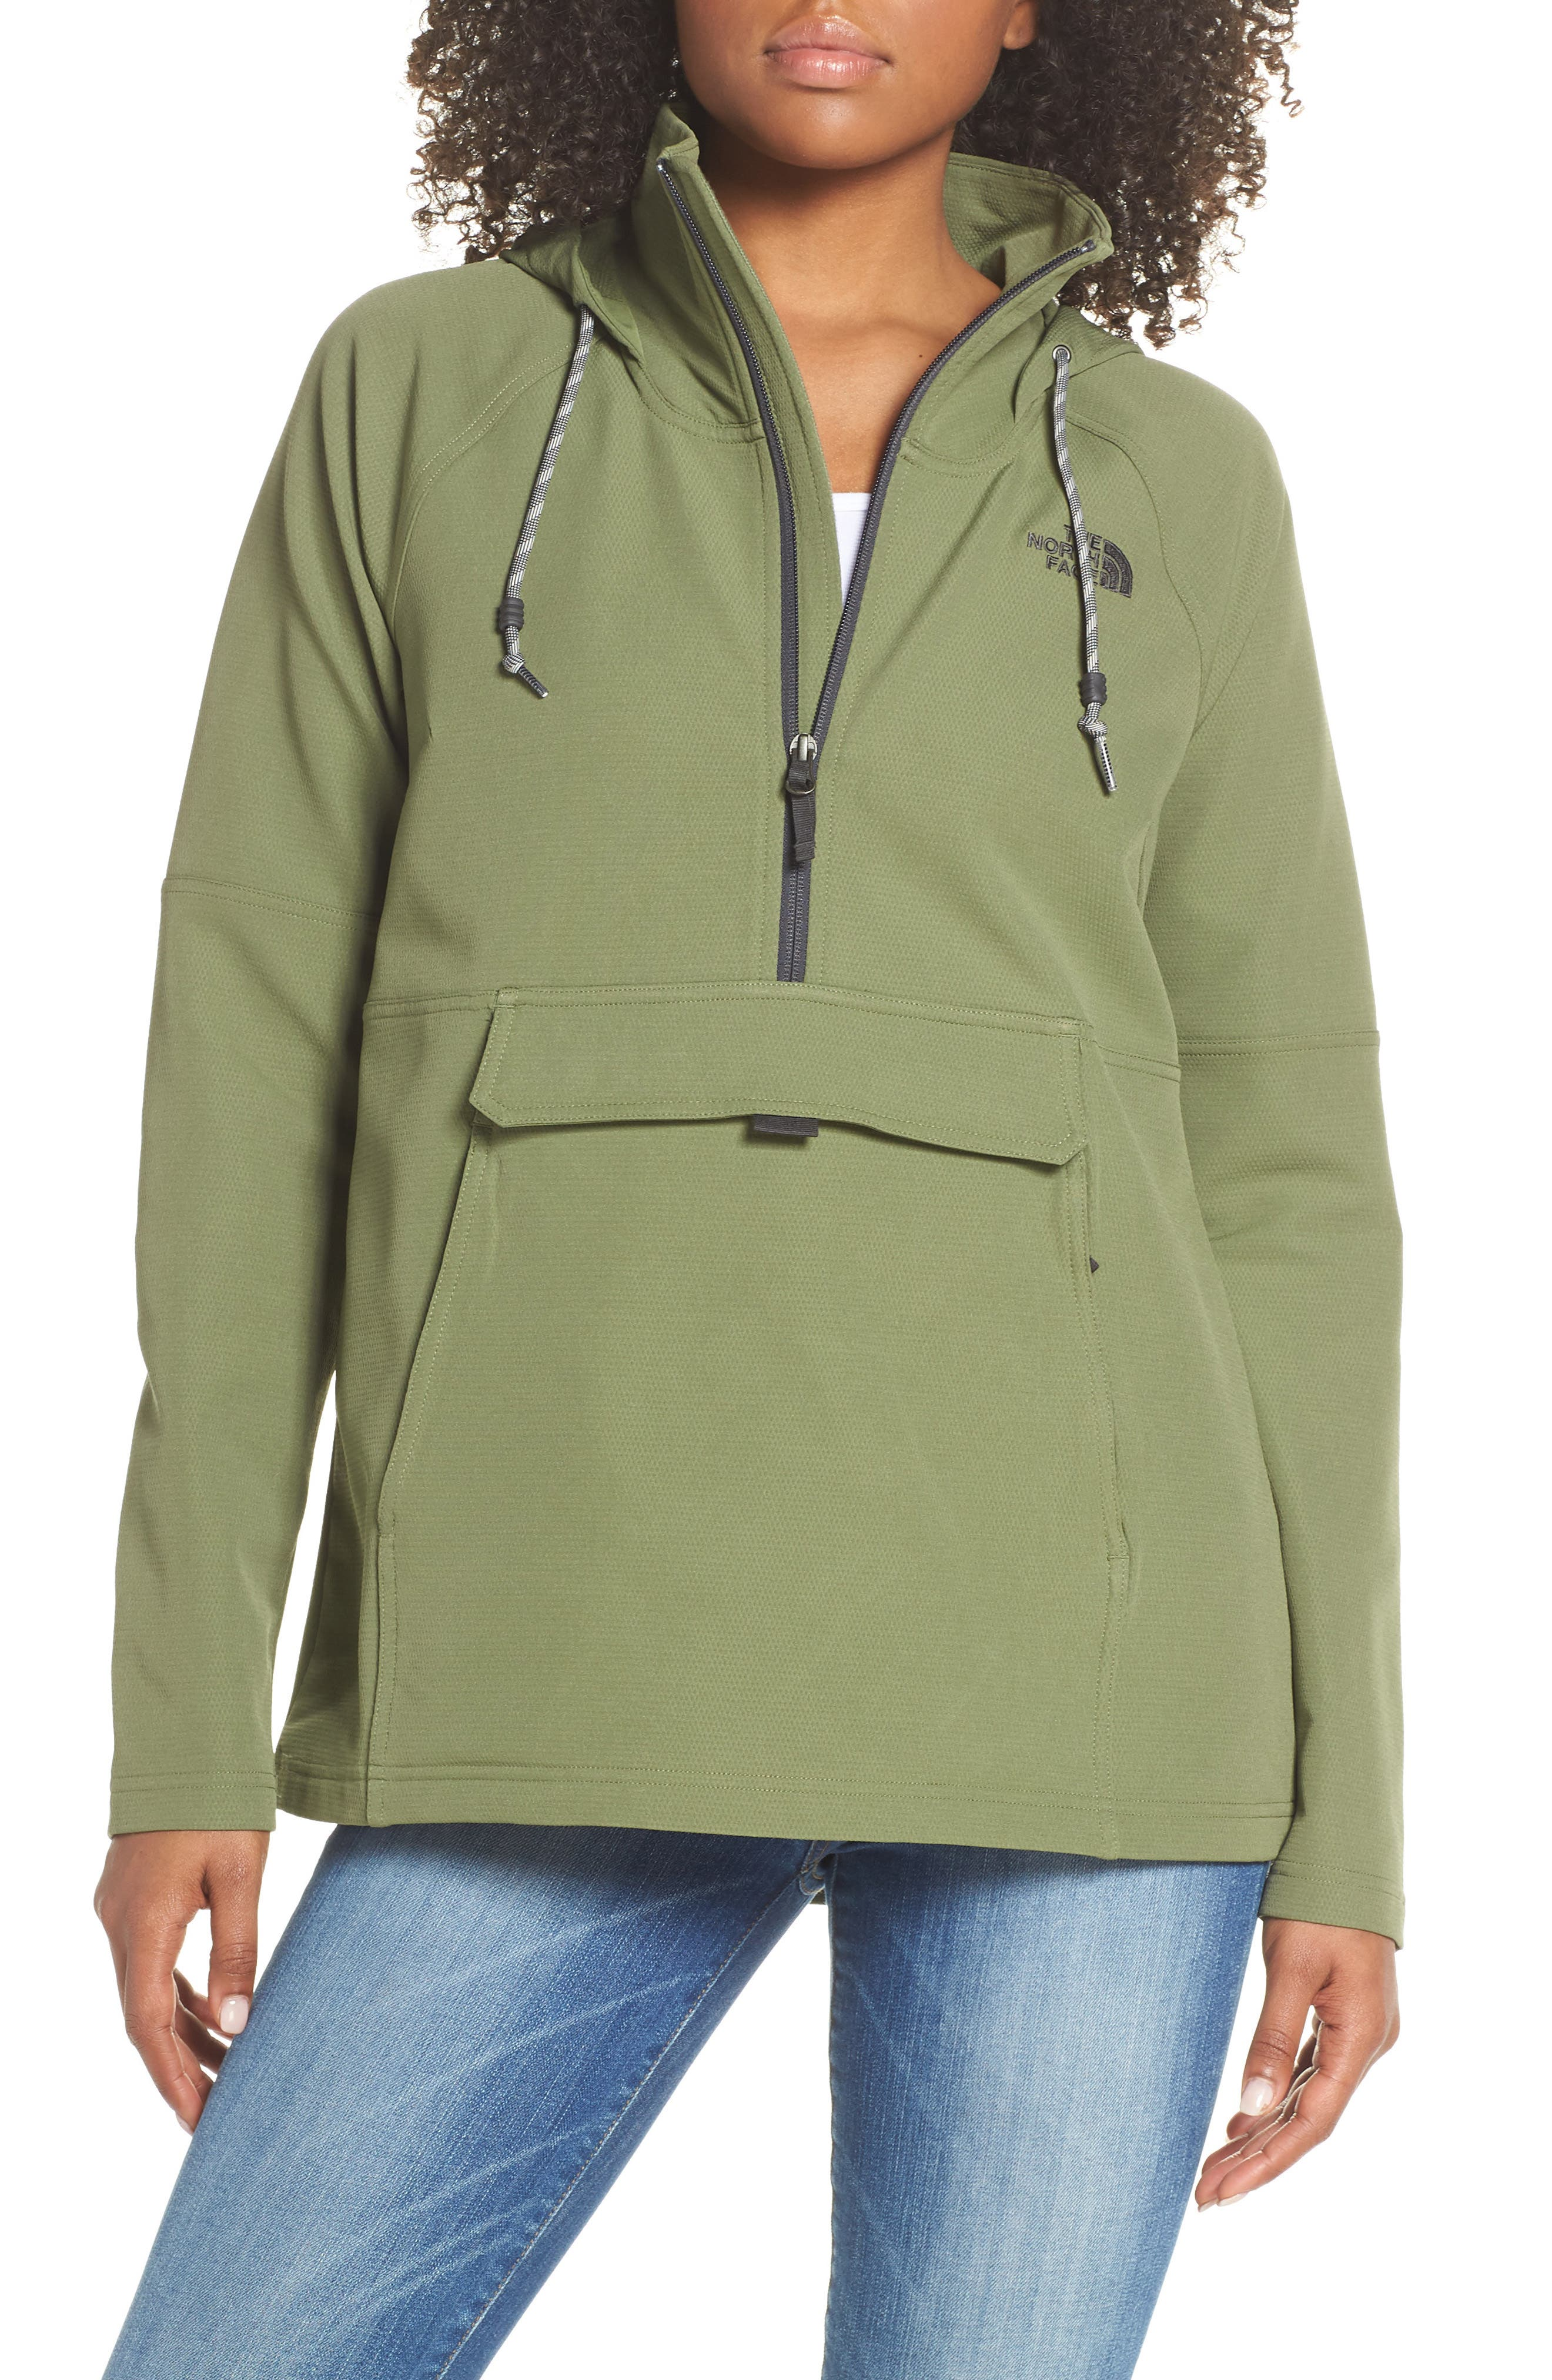 THE NORTH FACE, Tekno Ridge Hoodie, Main thumbnail 1, color, FOUR LEAF CLOVER